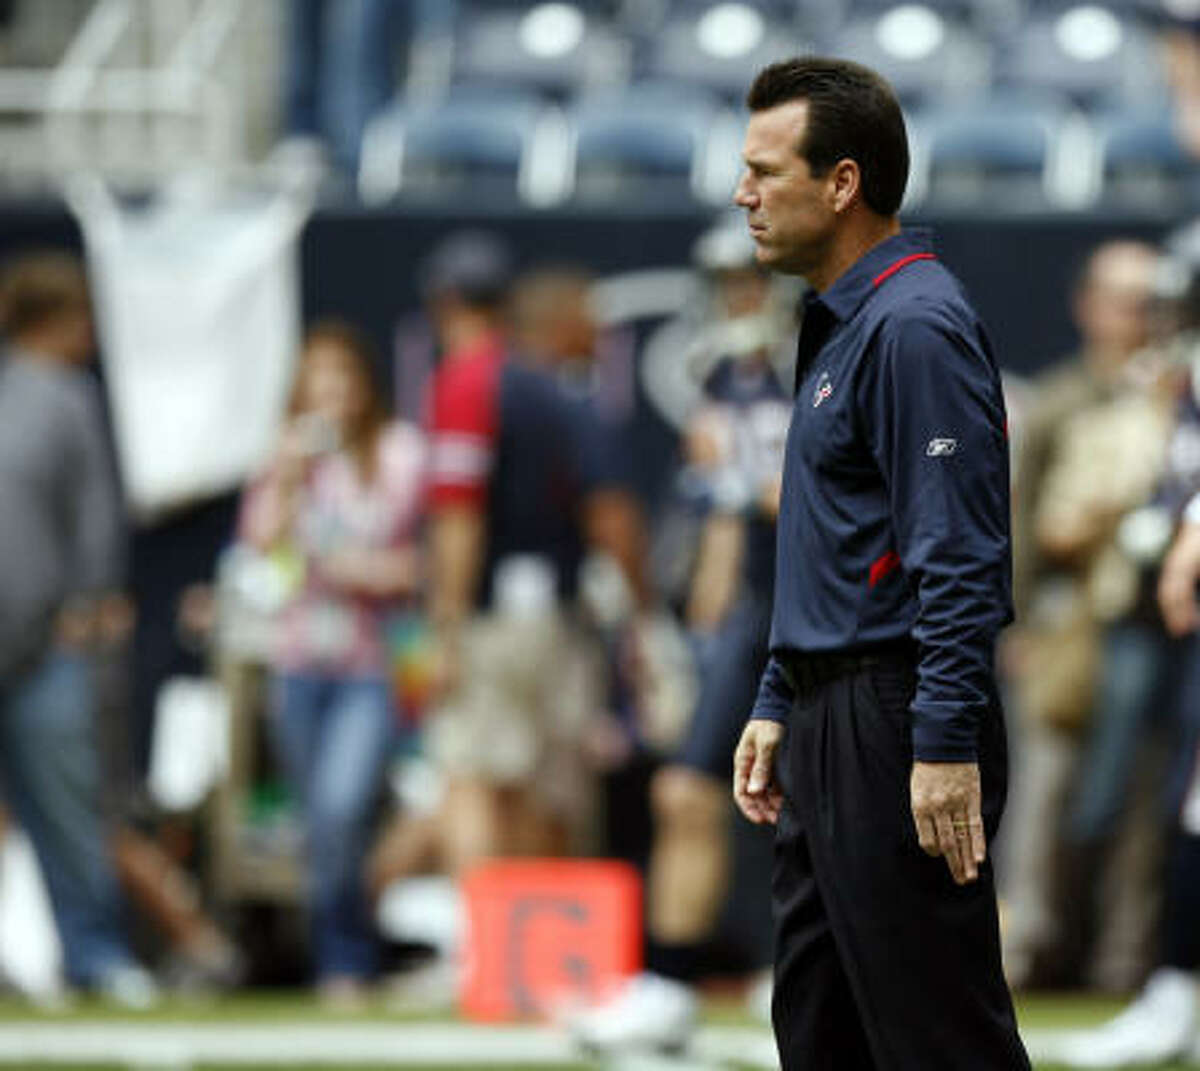 FALLING: Coach Gary Kubiak The hot seat just got a lot warmer for Kubiak after the Texans found a way to blow a 17-point lead to the Colts. Ultimately, Kubiak will be held accountable, especially if a season that began with promise ends with a third straight 8-8 season or worse. Games like Sunday are the type that cost coaches their jobs.